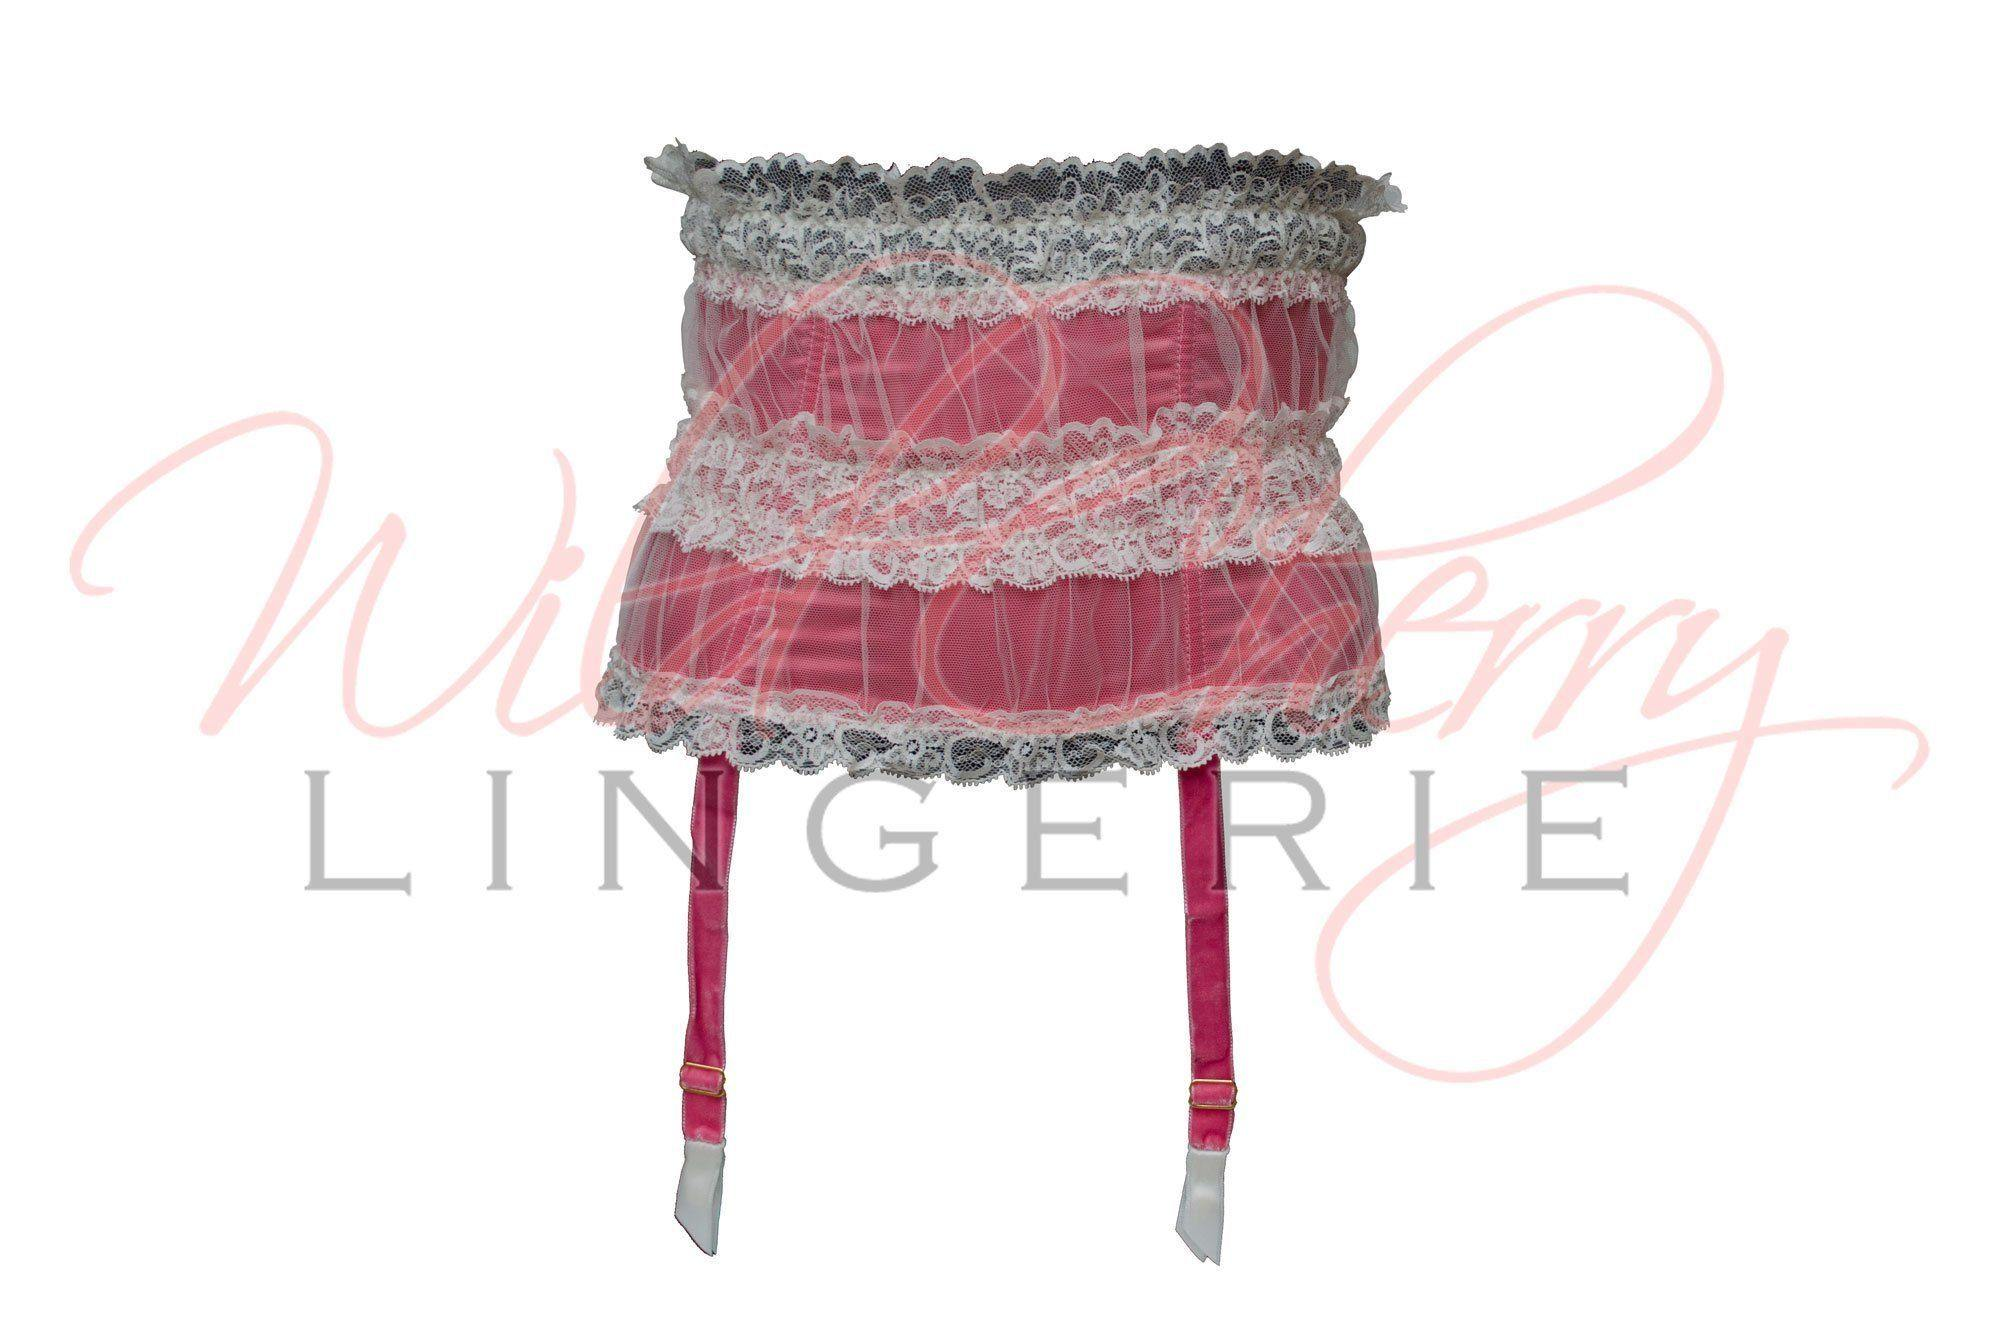 Andrea White Collection Suspender Belt VIPA Lingerie, Suspender Belts & Garter Leg, VIPA Lingerie - Wild Cherry Lingerie